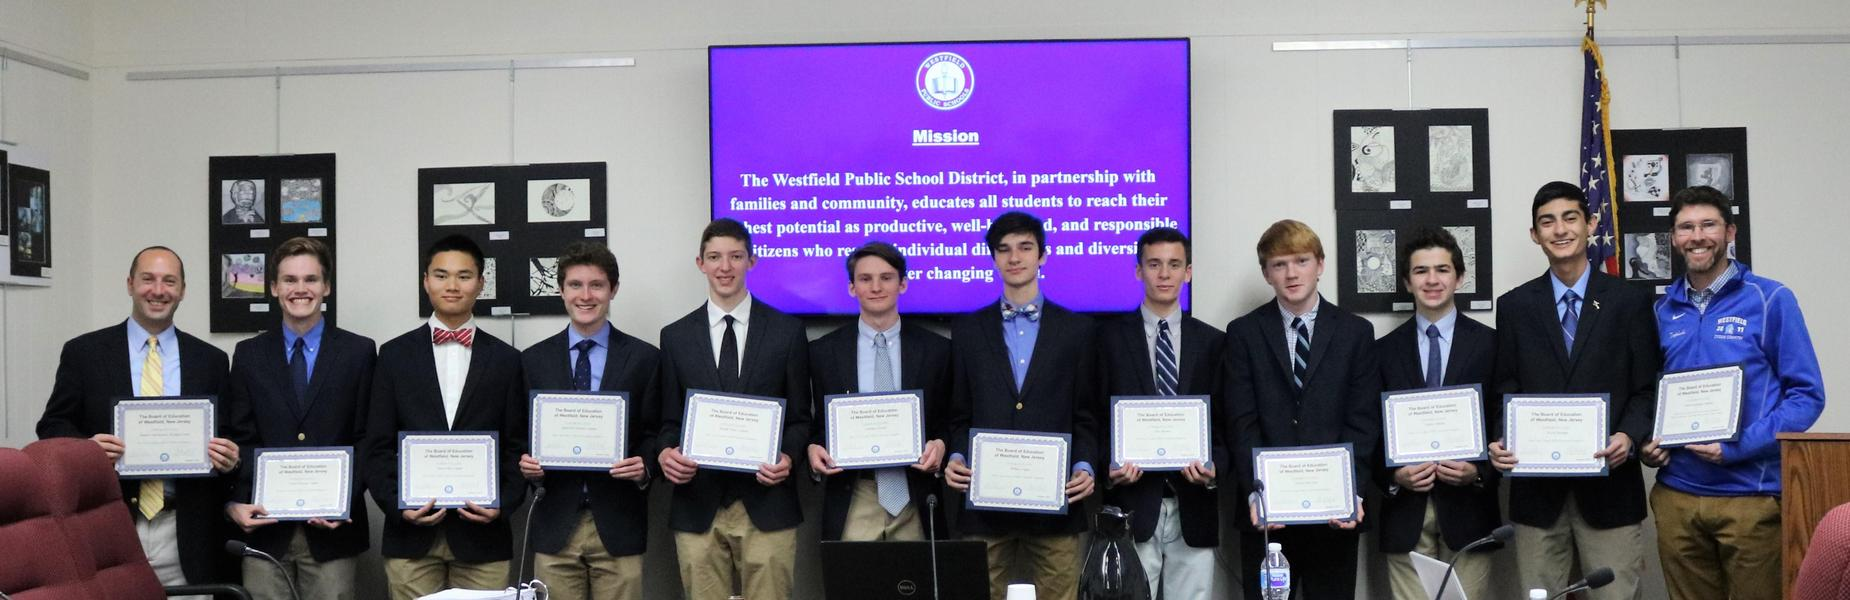 Westfield High School Boys Cross Country Team and their coaches are recognized at Dec 4 Board meeting as sectional champions.  Here, ten of the runners, including 4 captains, are flanked by their two coaches as they pose for the picture holding certificates.